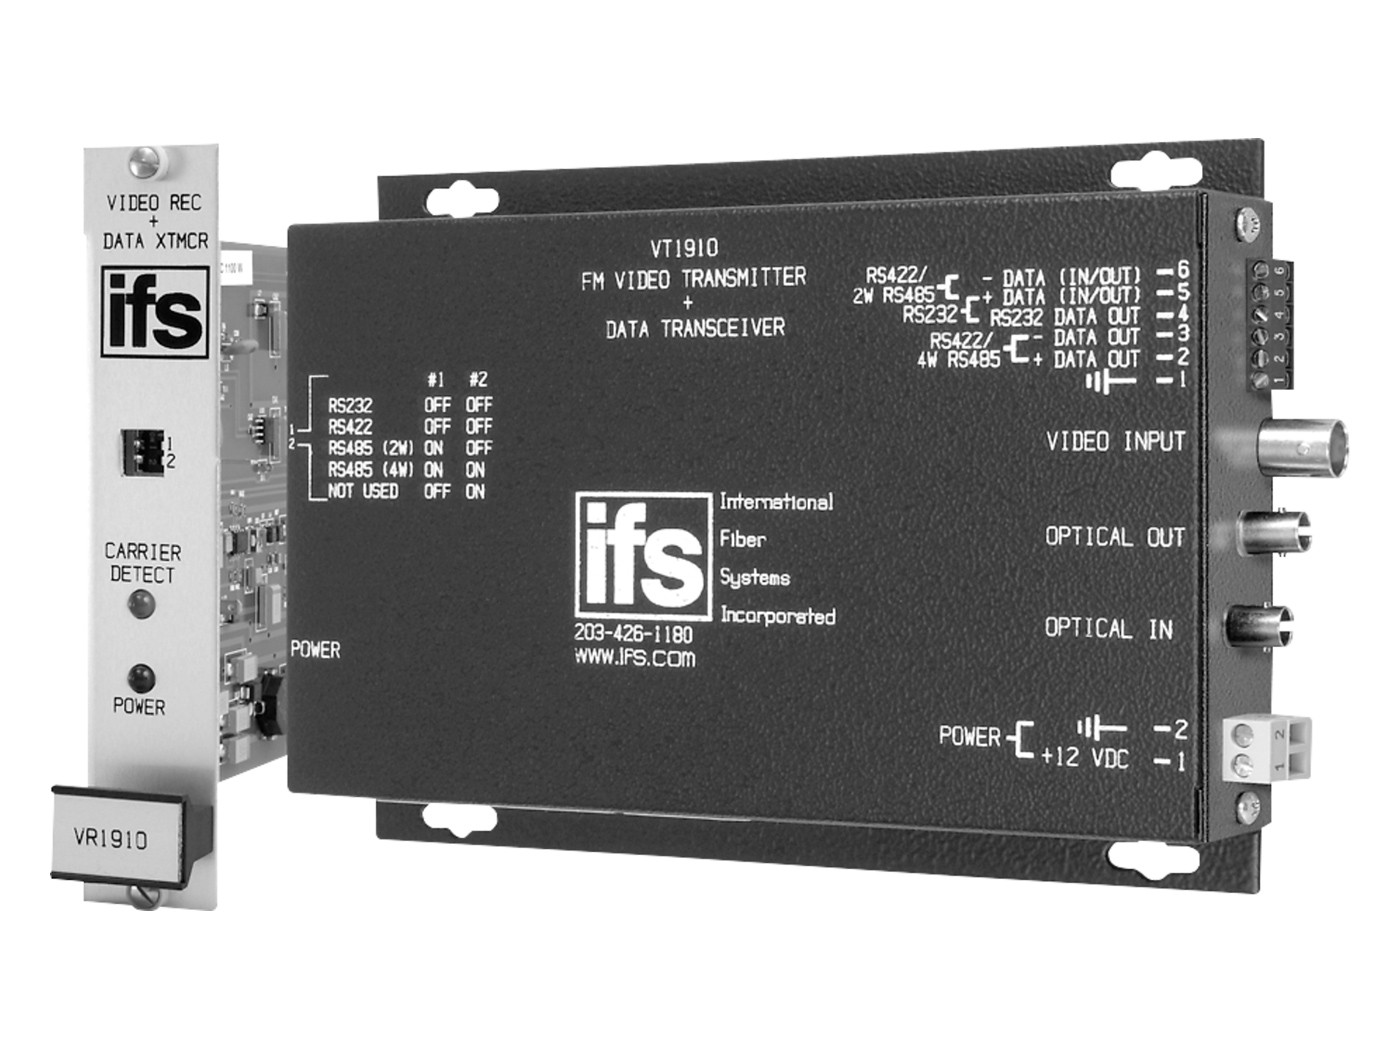 VR1930WDM IFS SINGLE MODE FIBER OPTIC RECEIVER FOR DATA AND VIDEO - RS422 FOR SENSORMATIC ************************* SPECIAL ORDER ITEM NO RETURNS OR SUBJECT TO RESTOCK FEE *************************